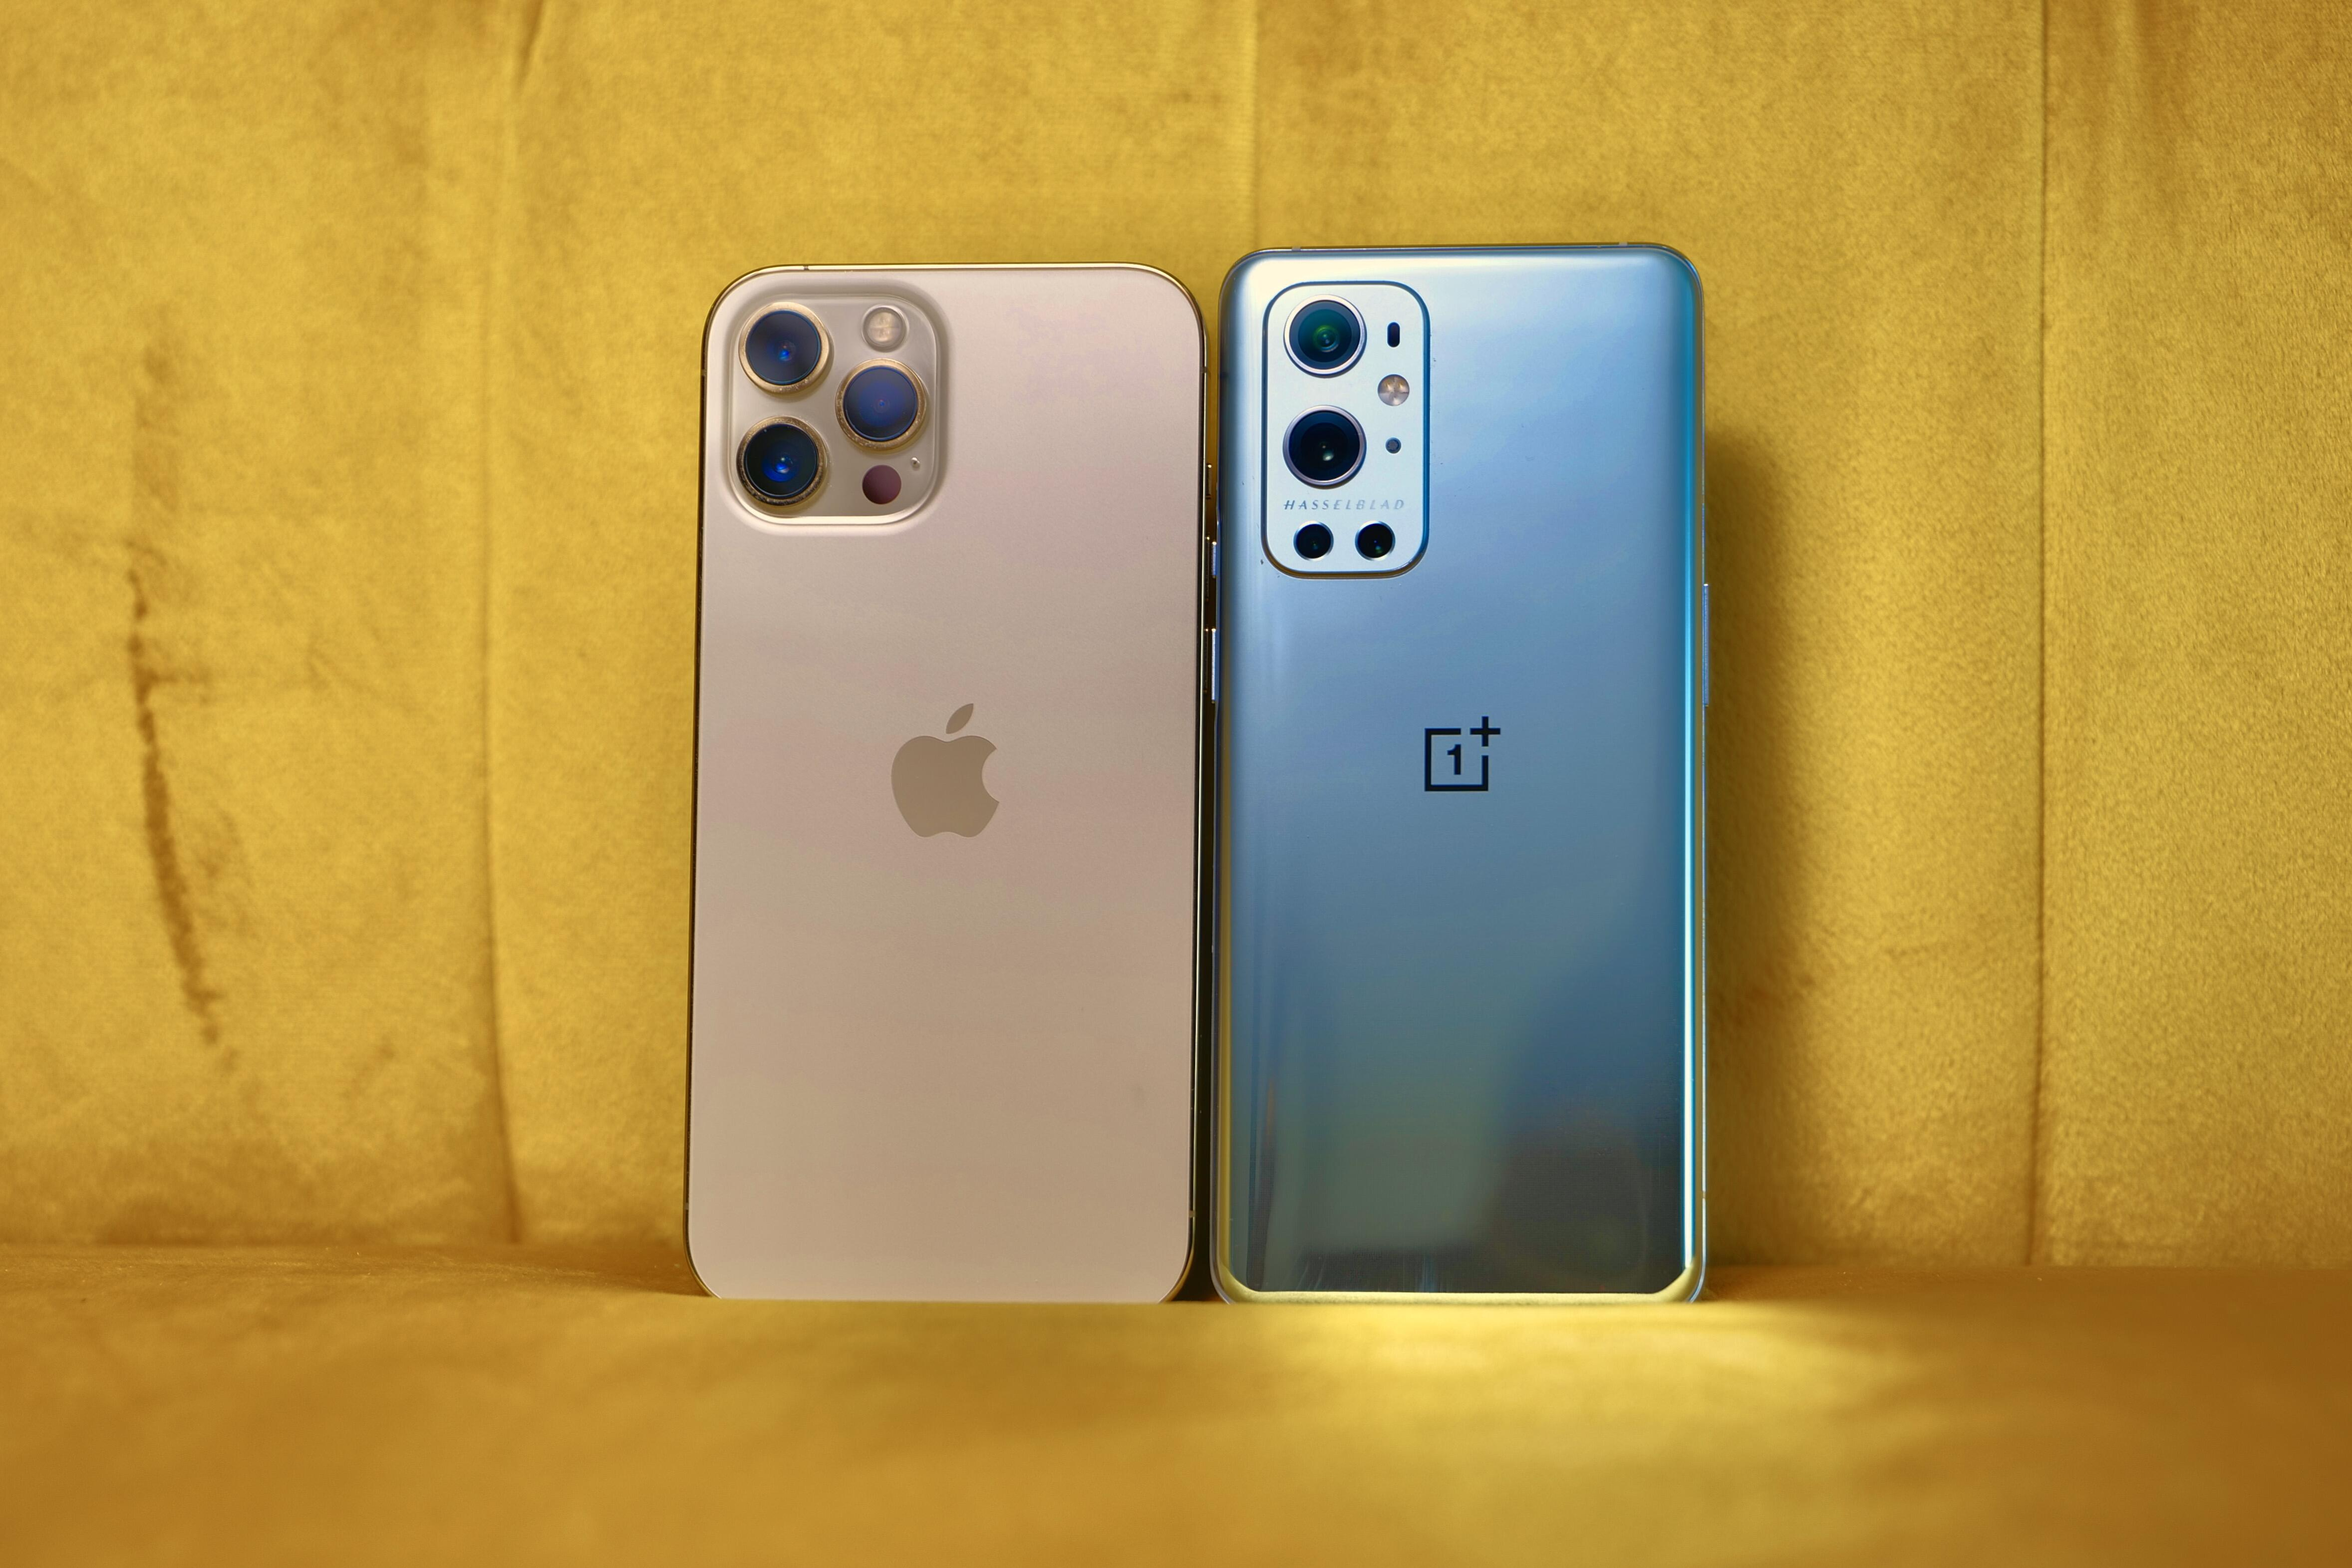 iPhone 12 Pro Max and OnePlus 9 Pro